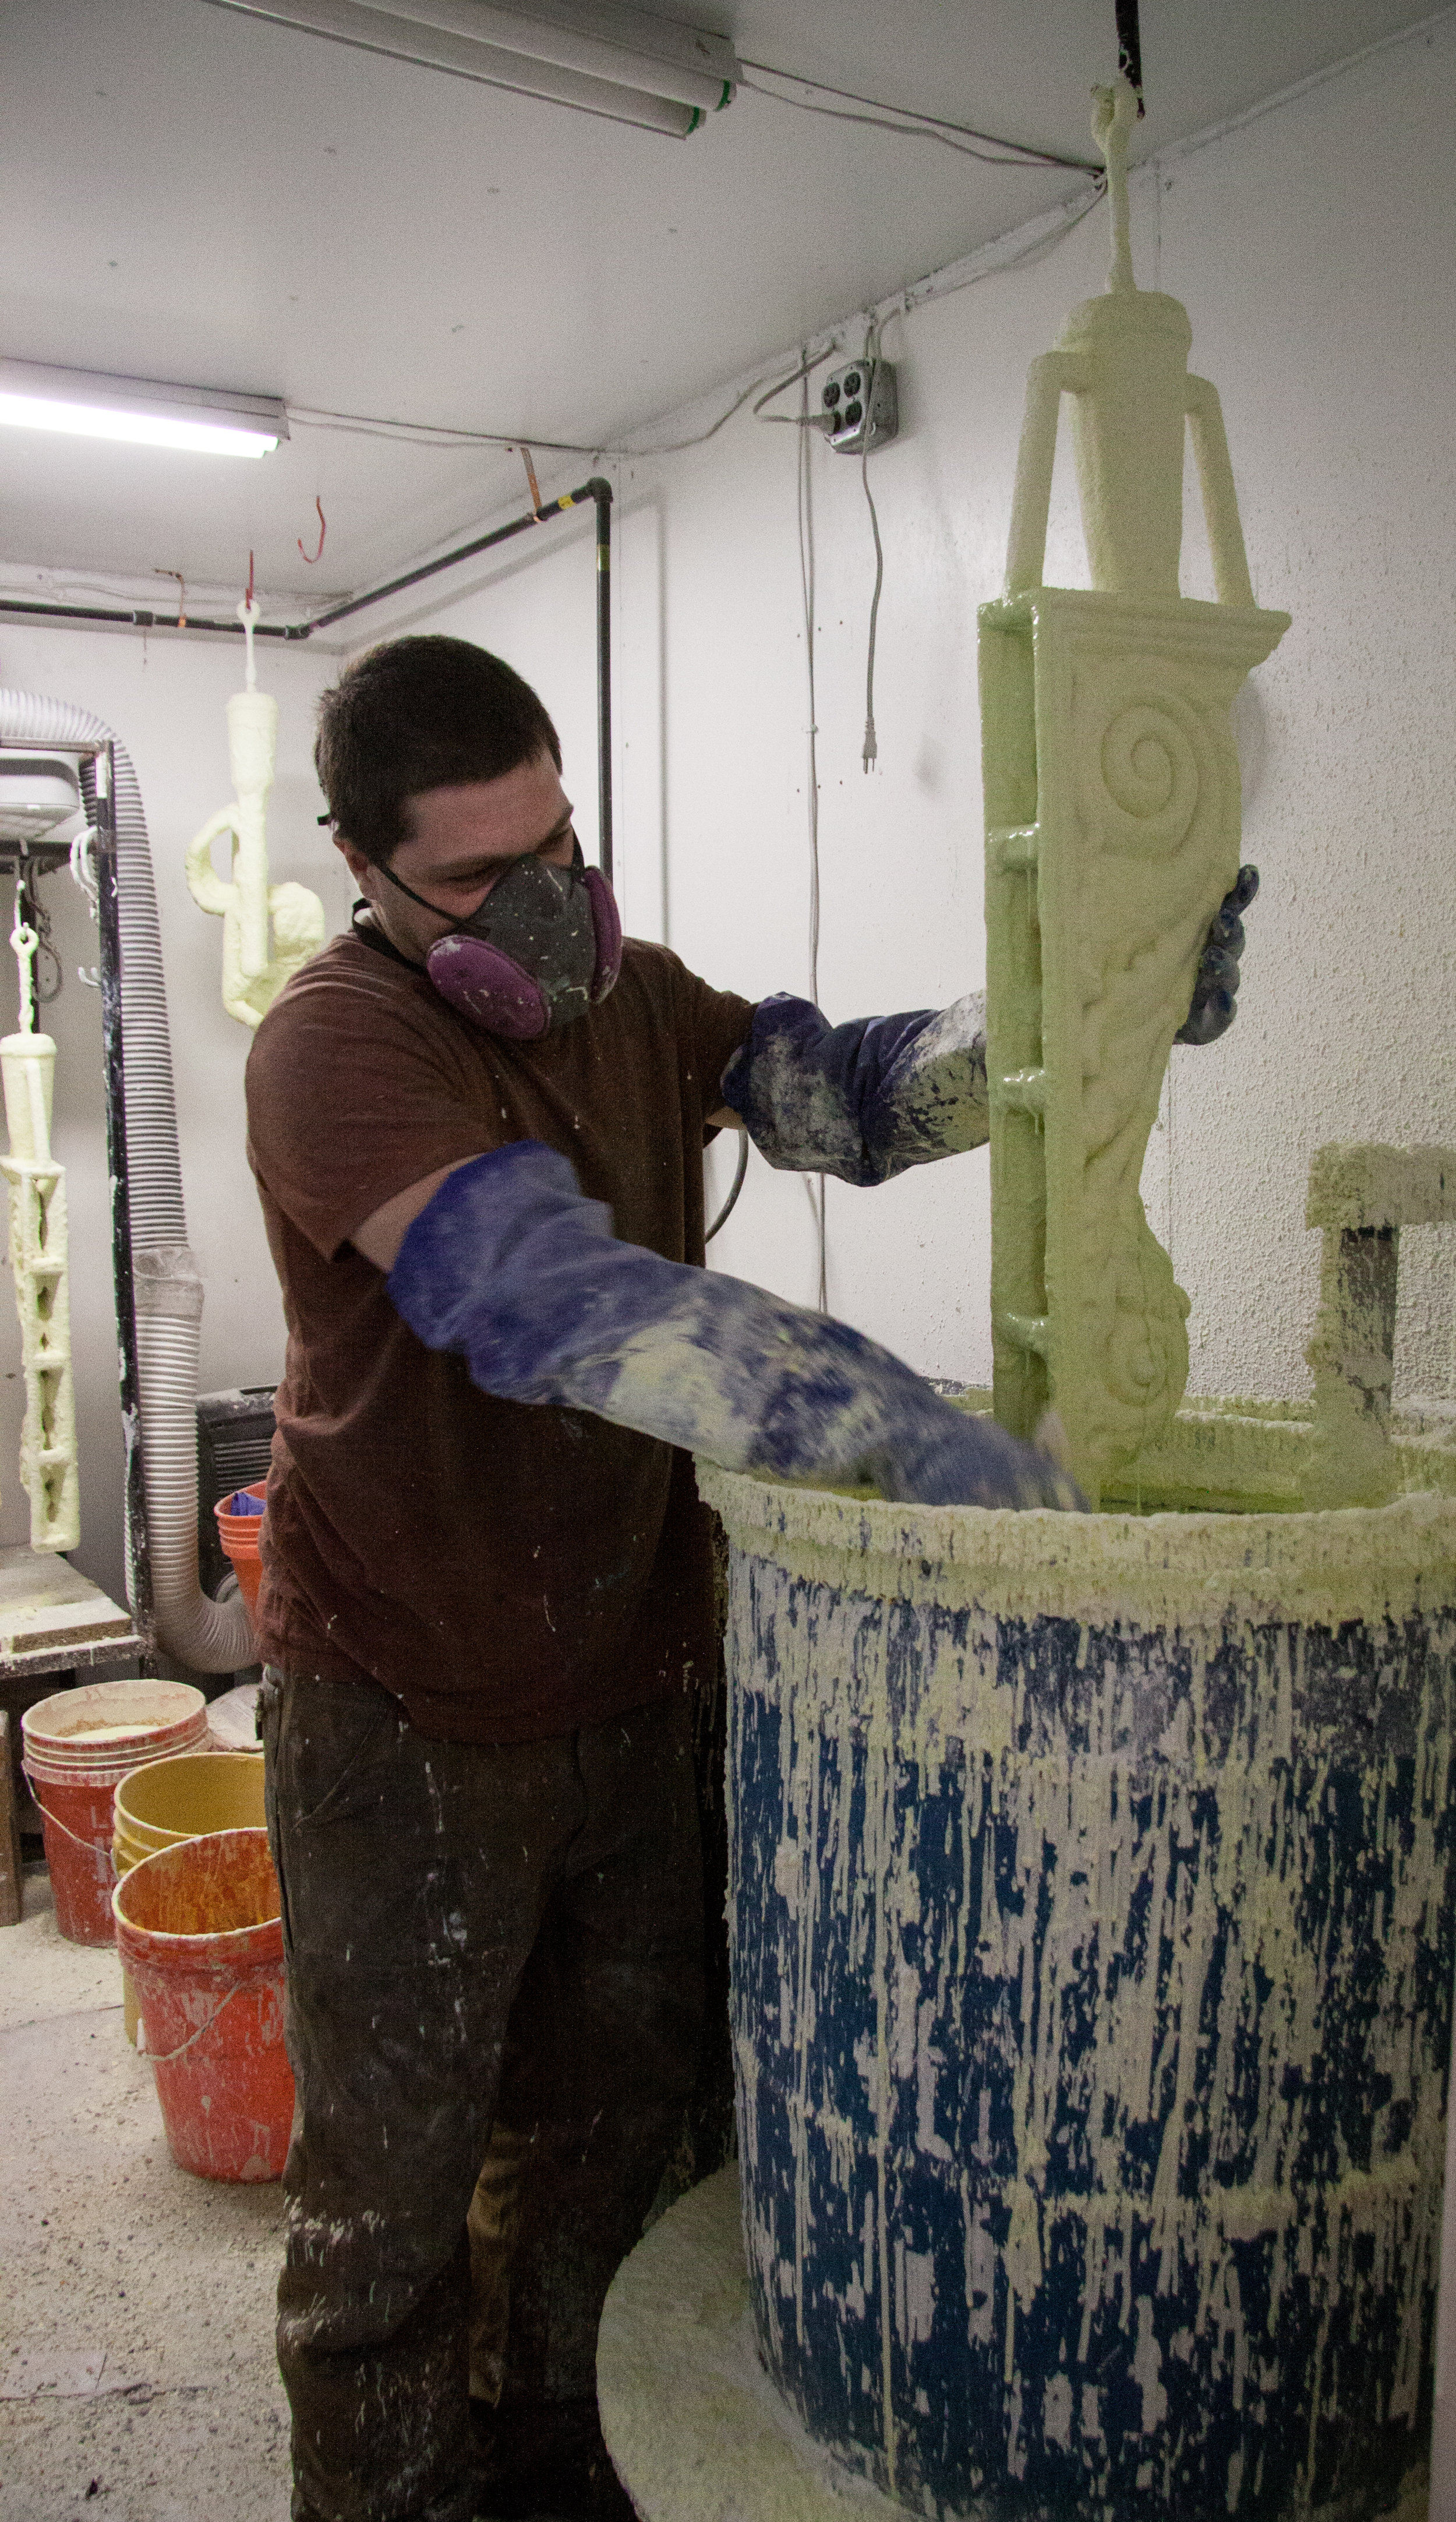 Dipping the wax to build up the ceramic mold.